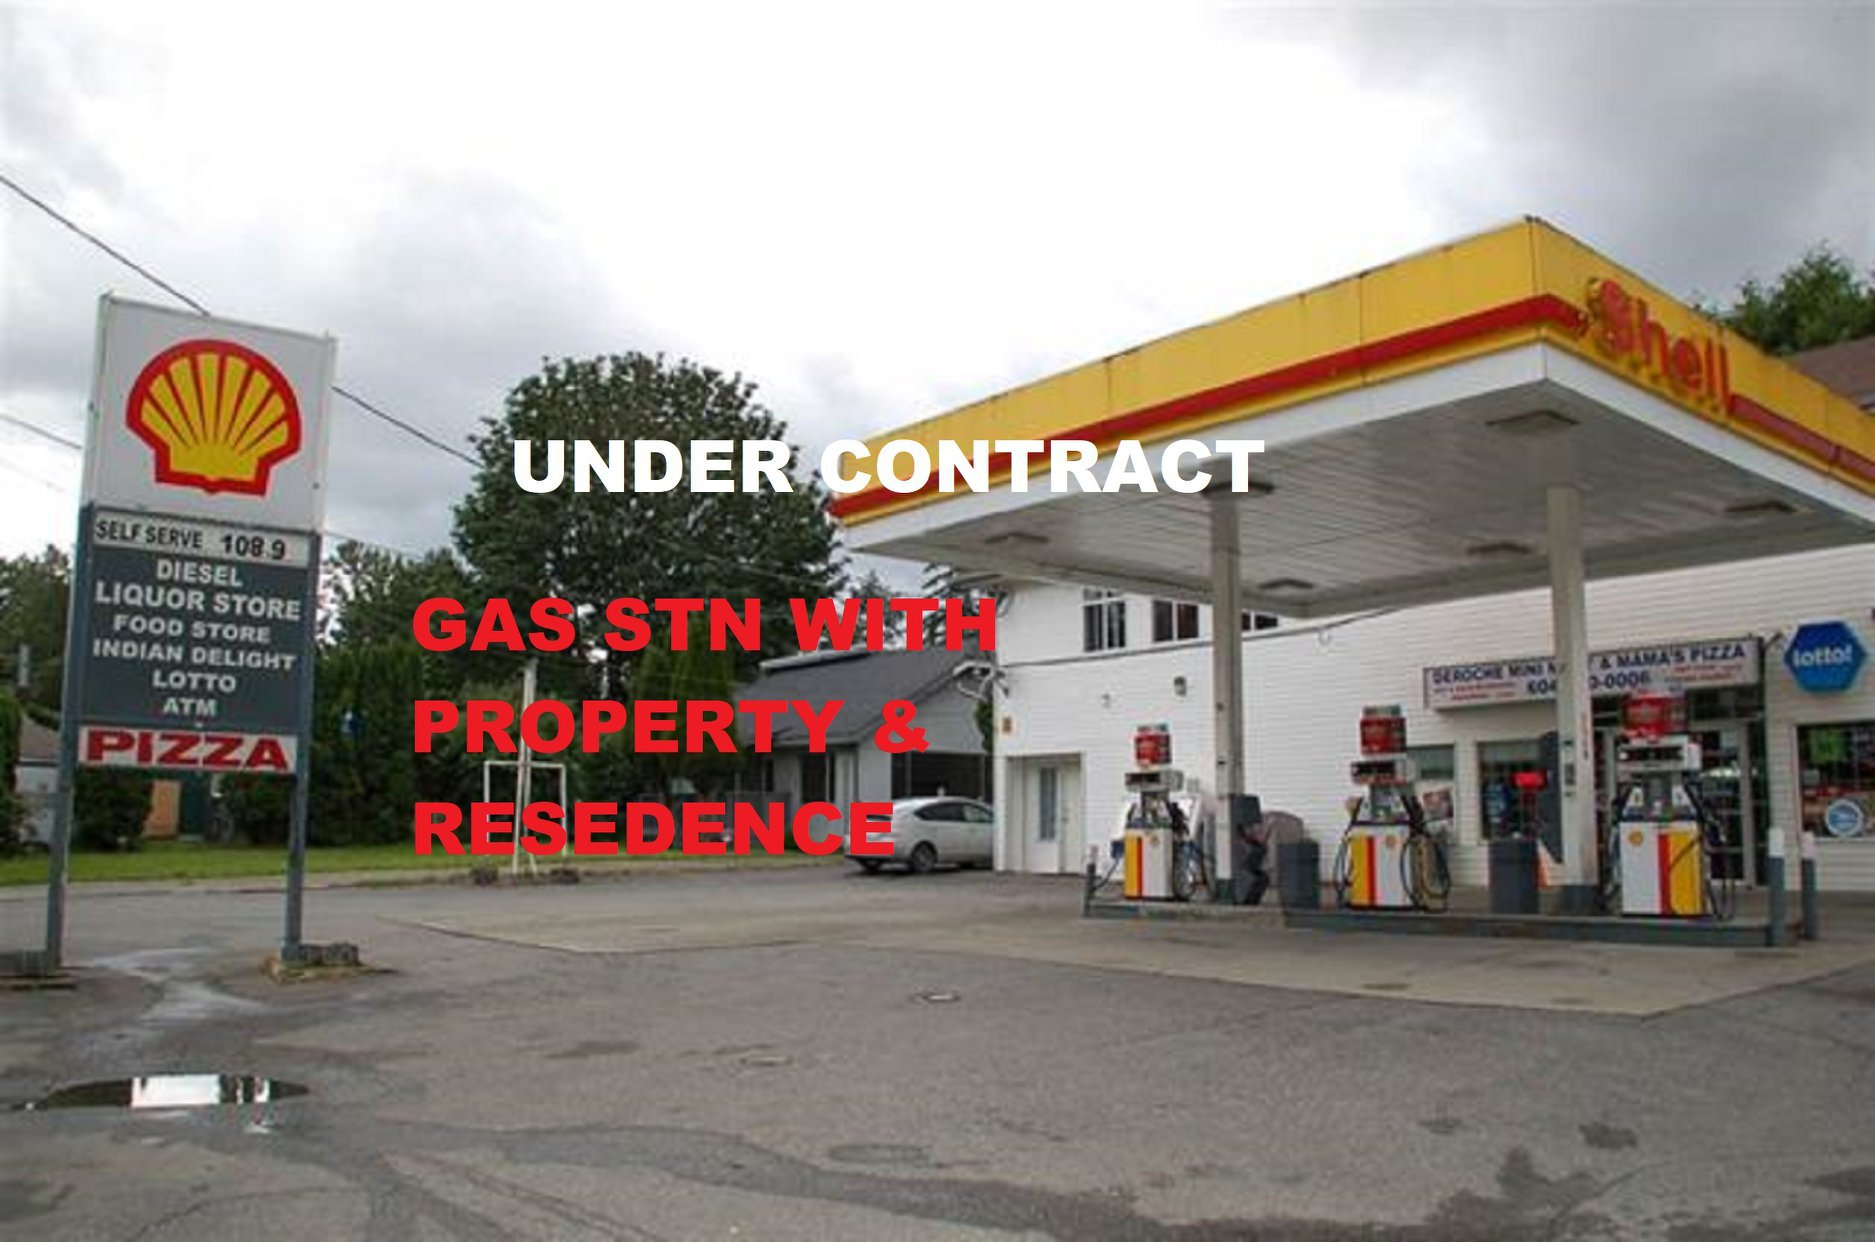 Main Photo: Exclusive Shell Gas Station with Liquor Store: Business with Property for sale